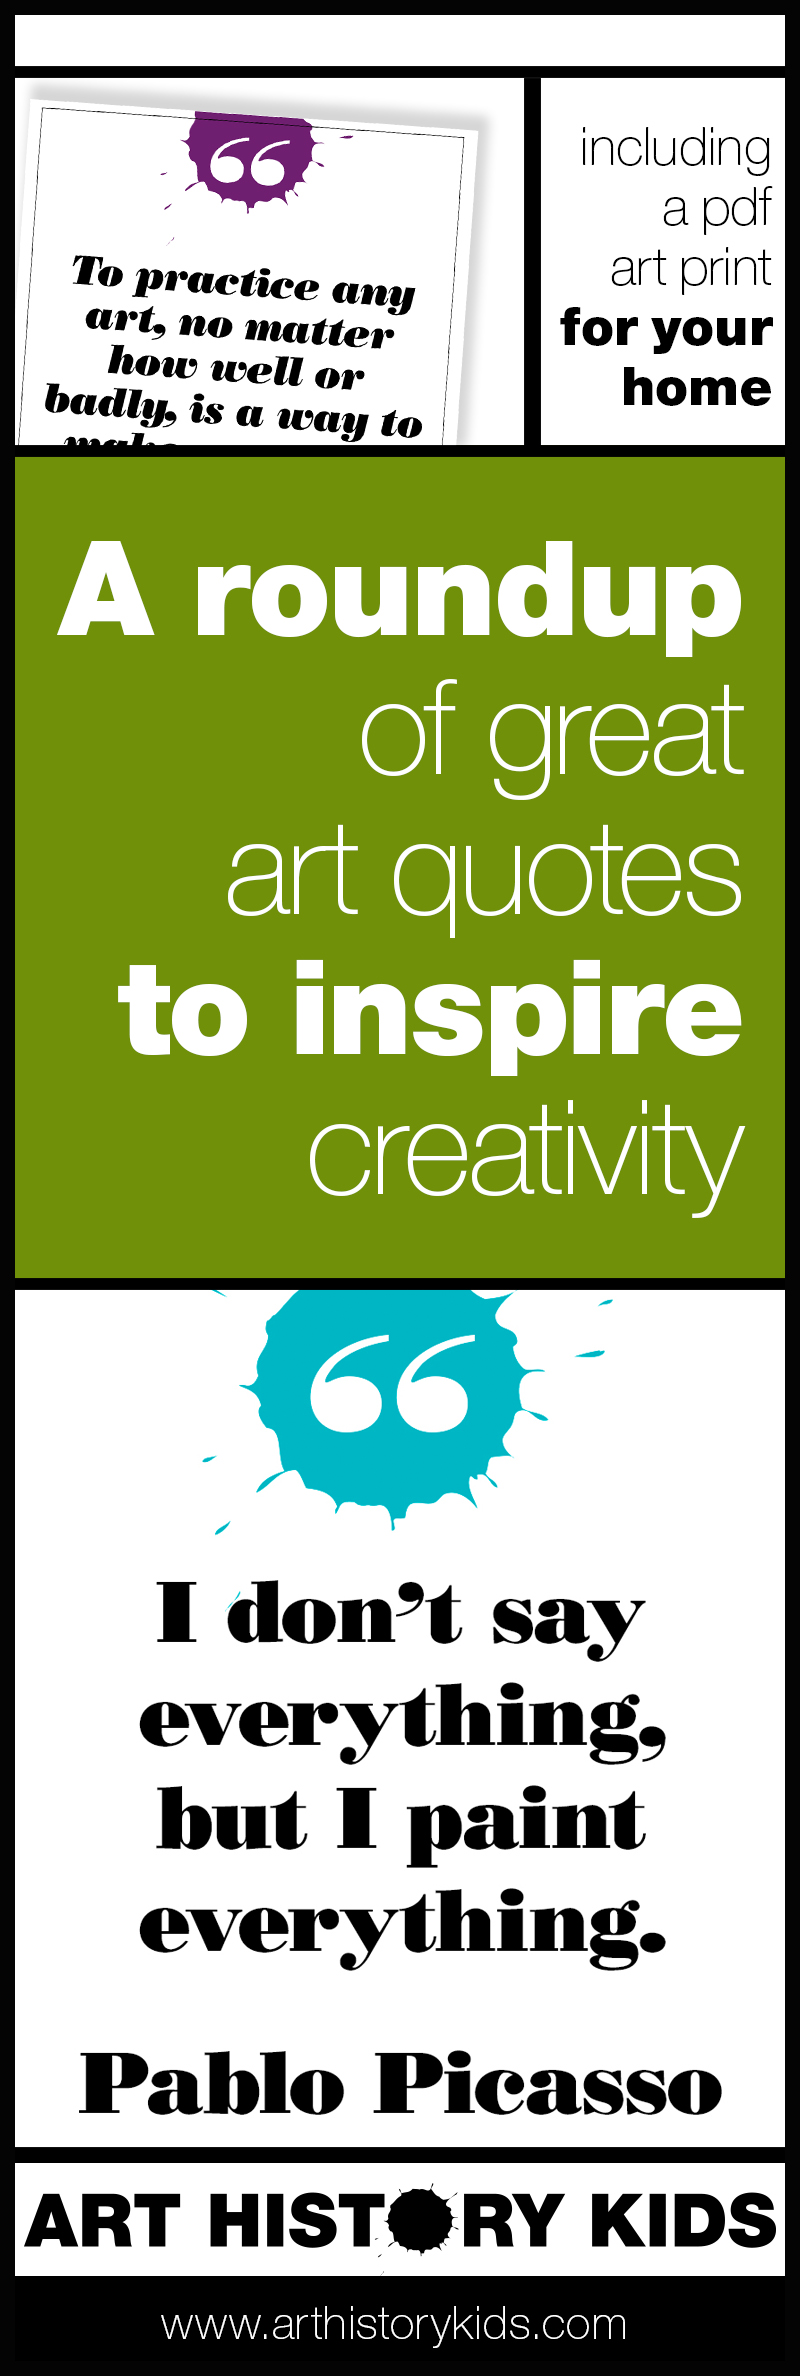 A roundup of art history quotes to keep you inspired! Creating with your kids is easy and fun! Click to see LOTS of great art history ideas for kids.